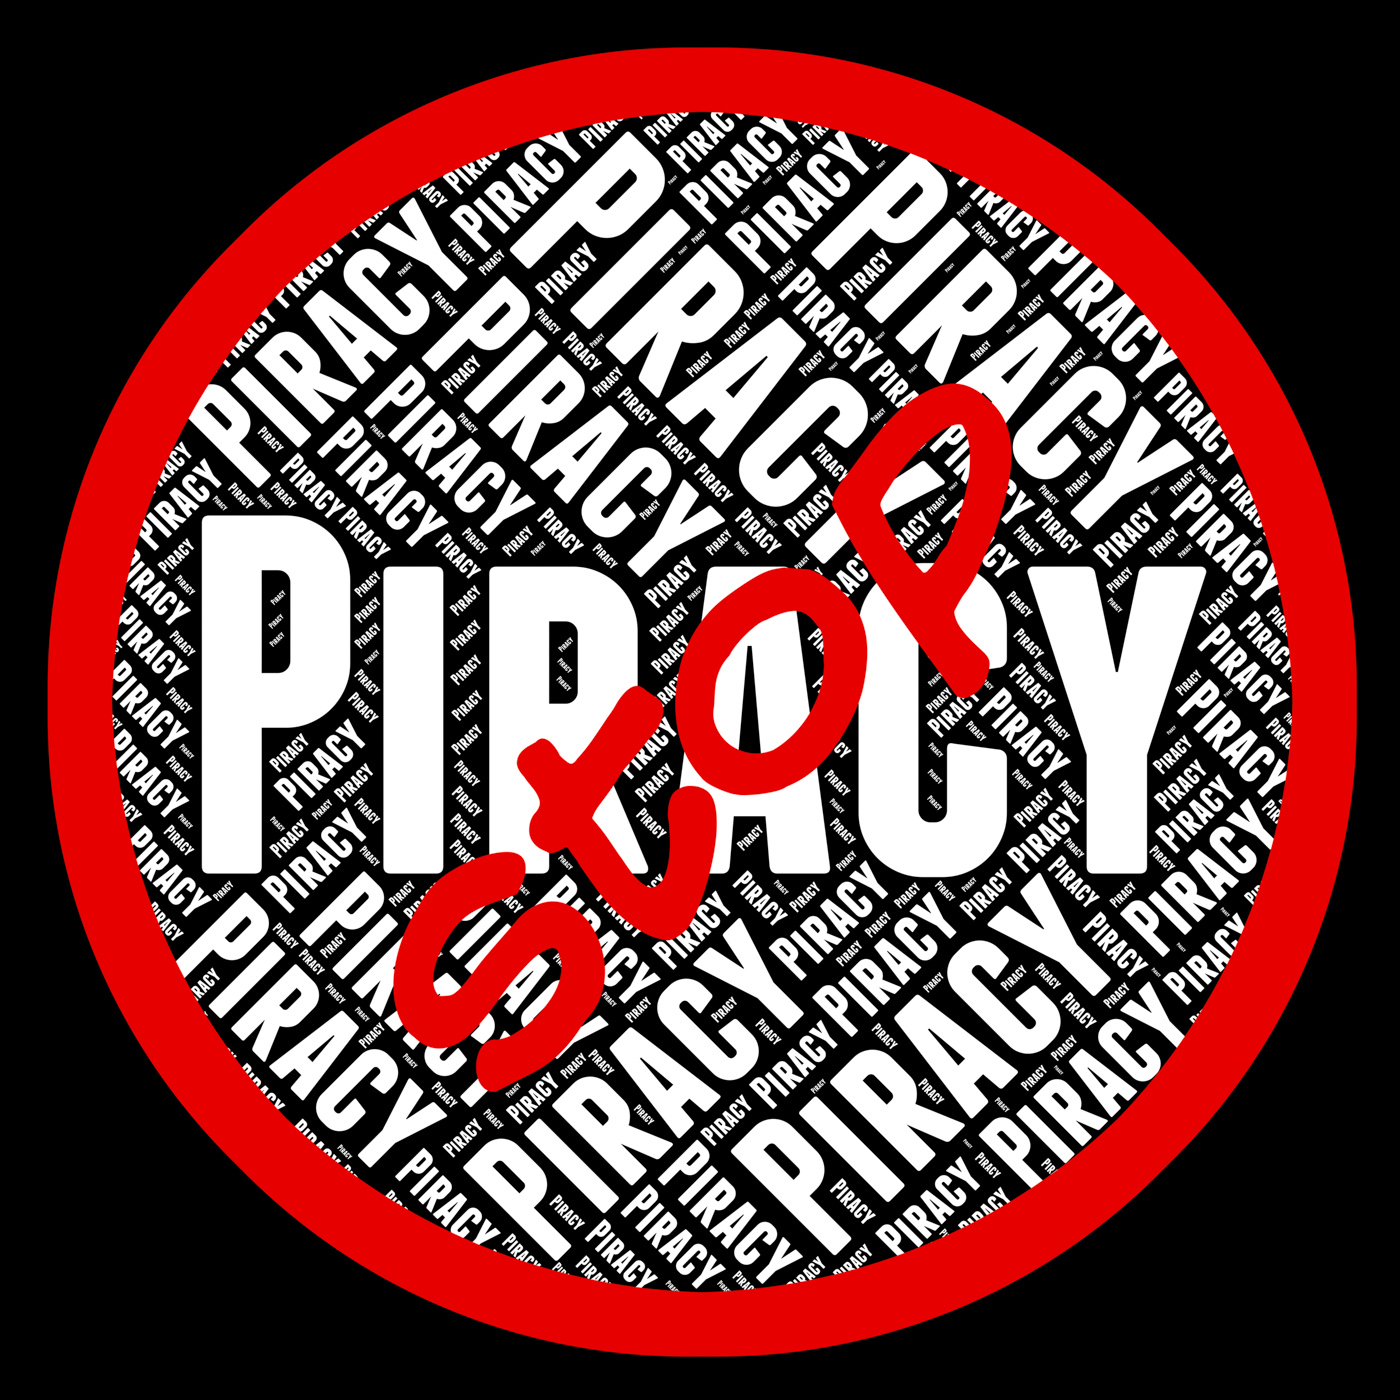 Stop piracy means warning sign and danger photo